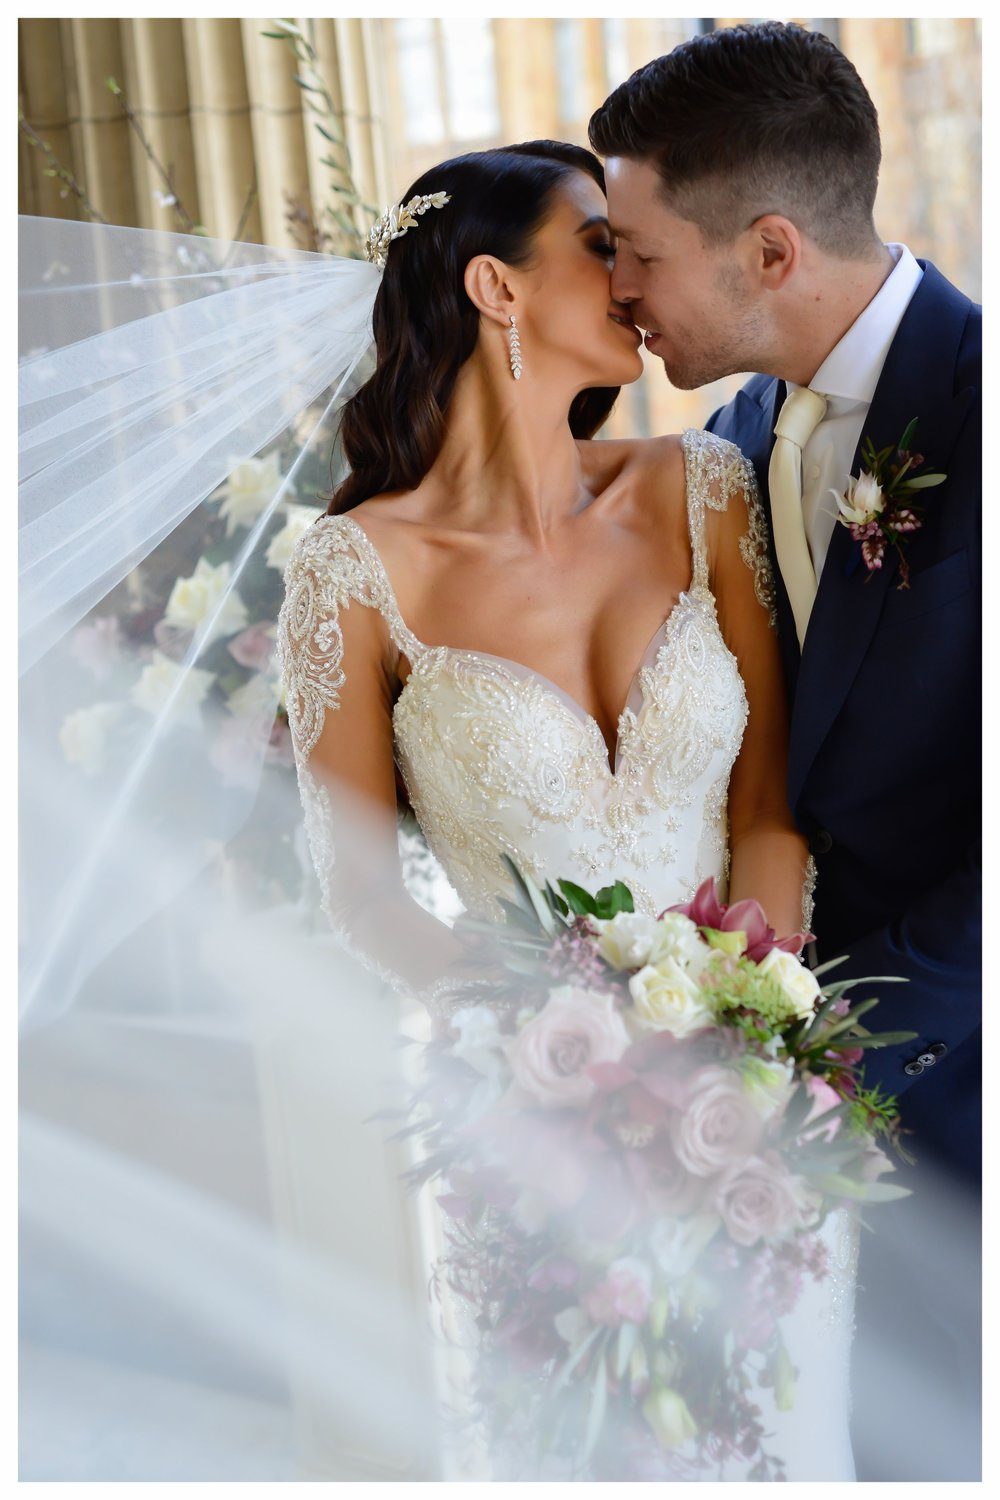 ATEIA Photography & Video - www.ATEIAphotography.com.au - Wedding Photography Melbourne (760 of 1356).jpg